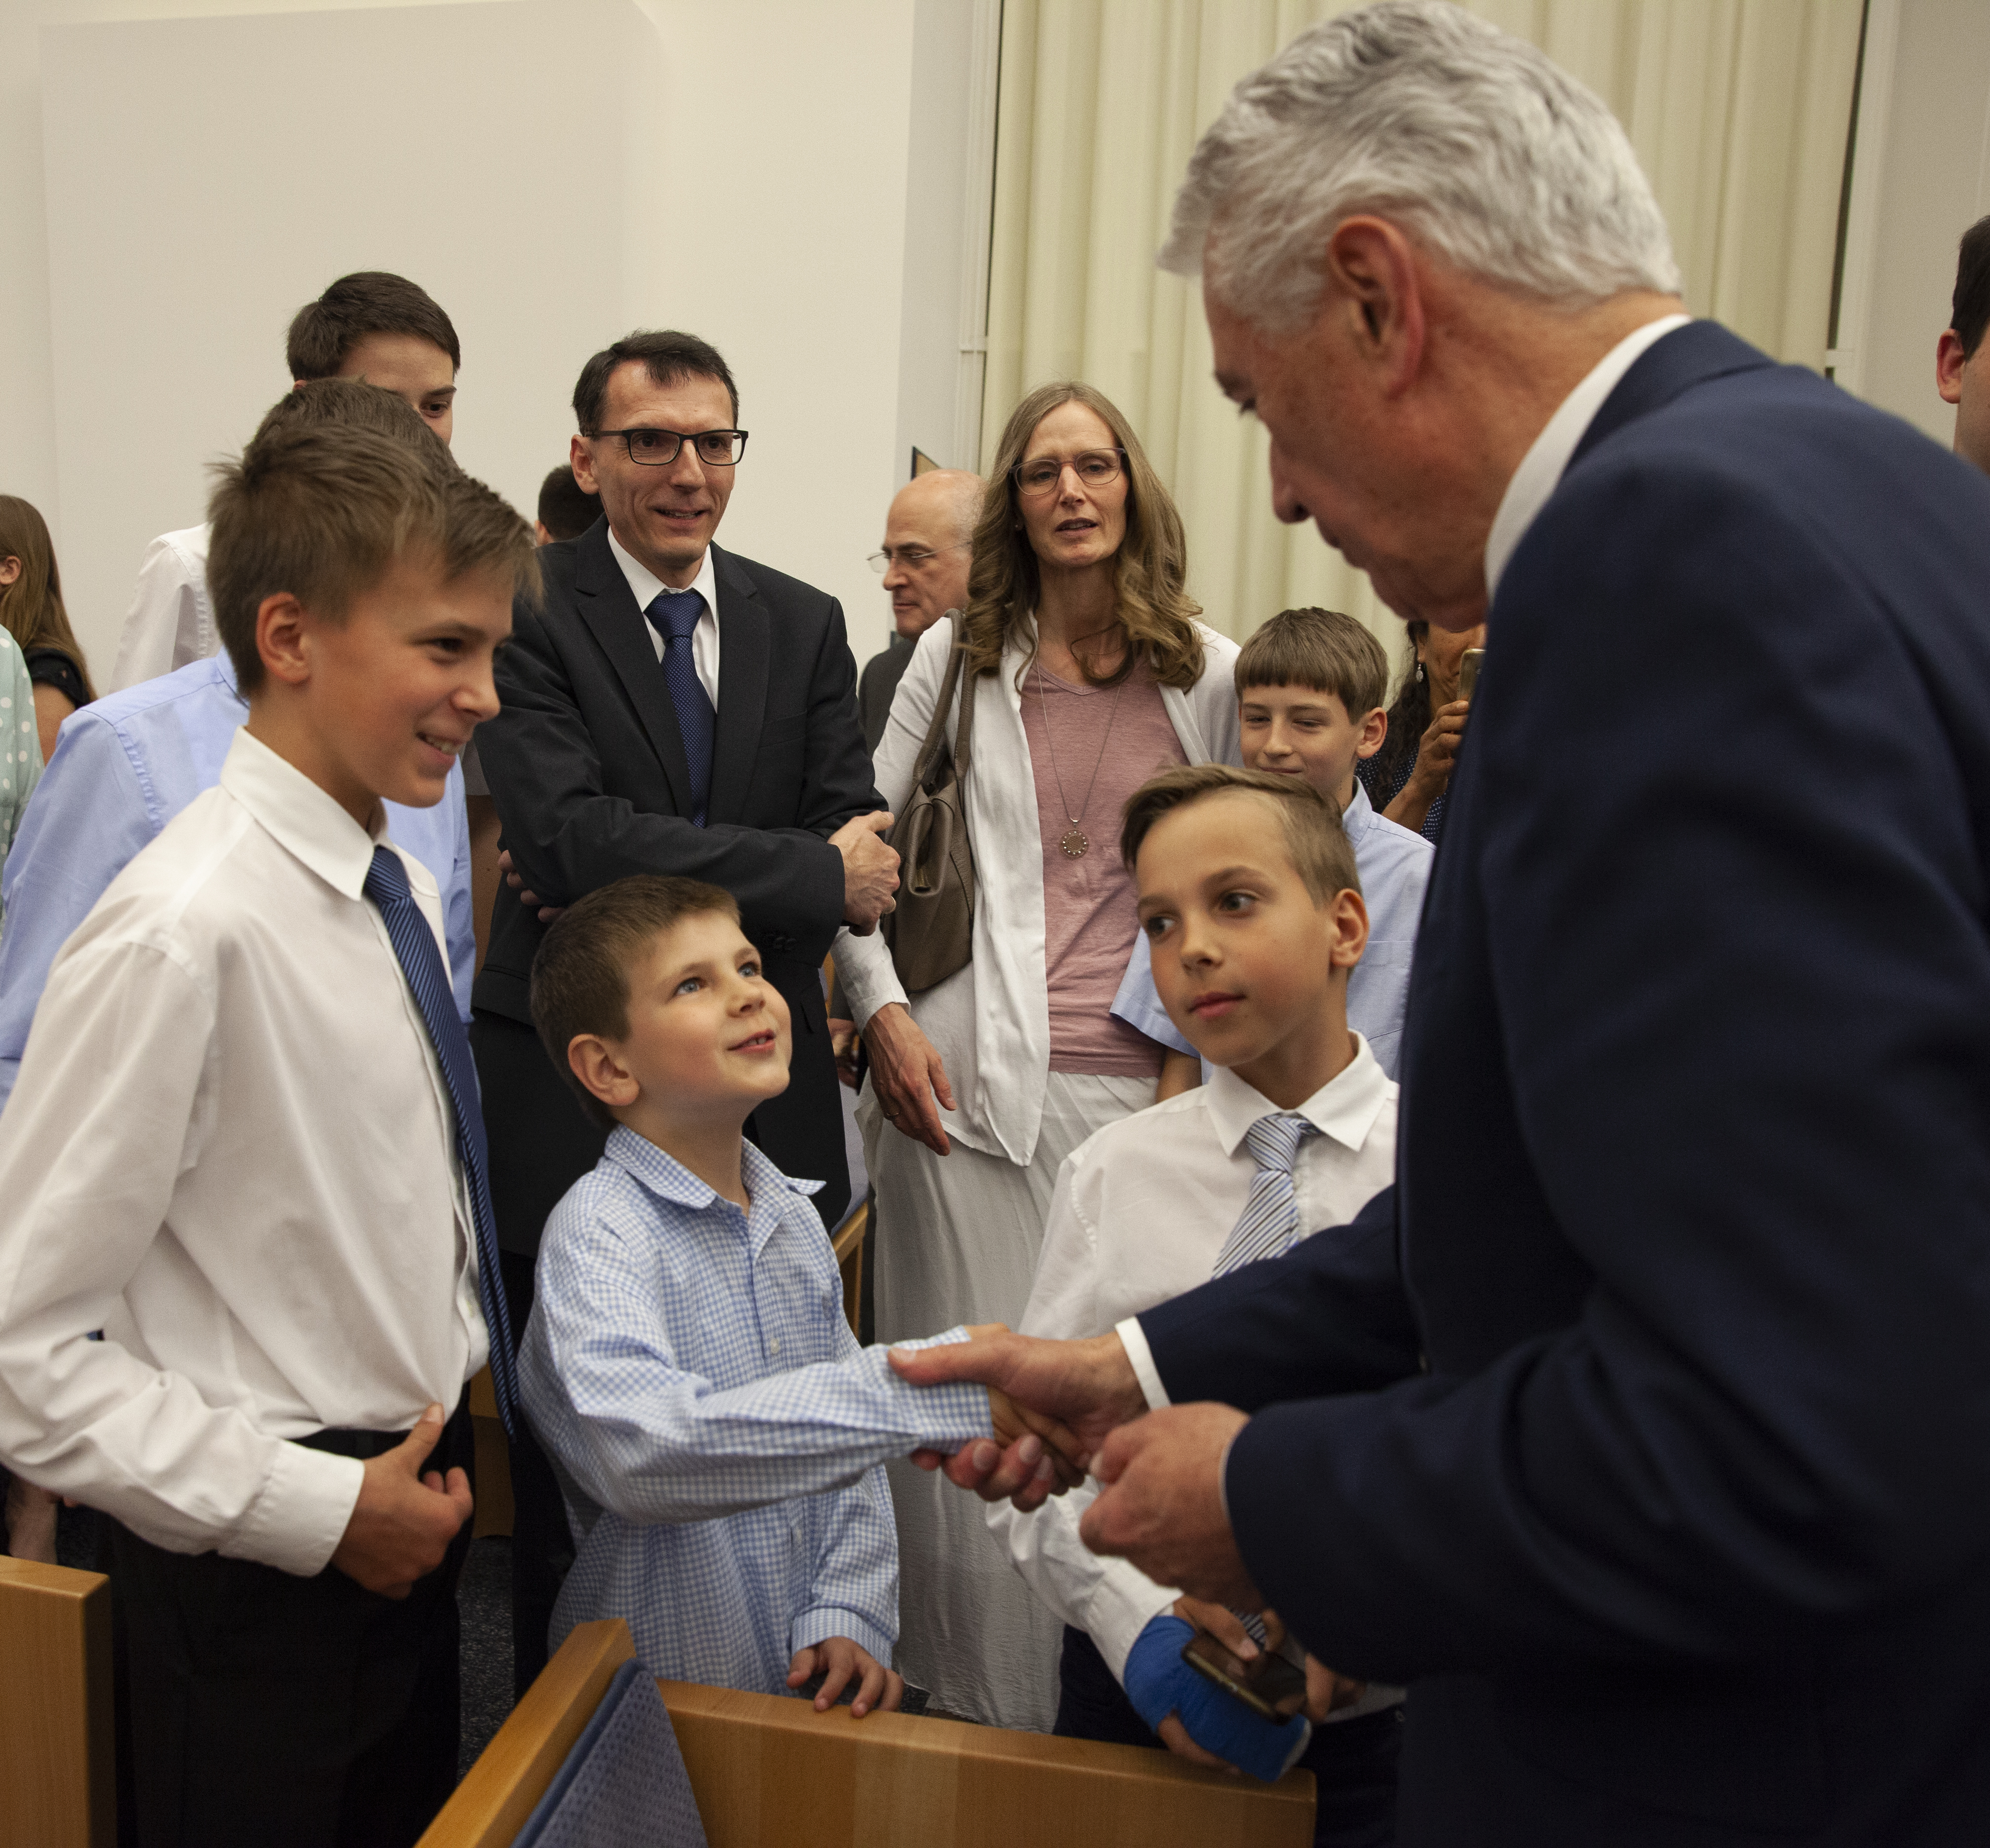 Elder Dieter F. Uchtdorf greets members following a regional Face to Face broadcast to German-speaking Latter-day Saints in Europe on April 20, 2019. The broadcast originated in Frankfurt, Germany.